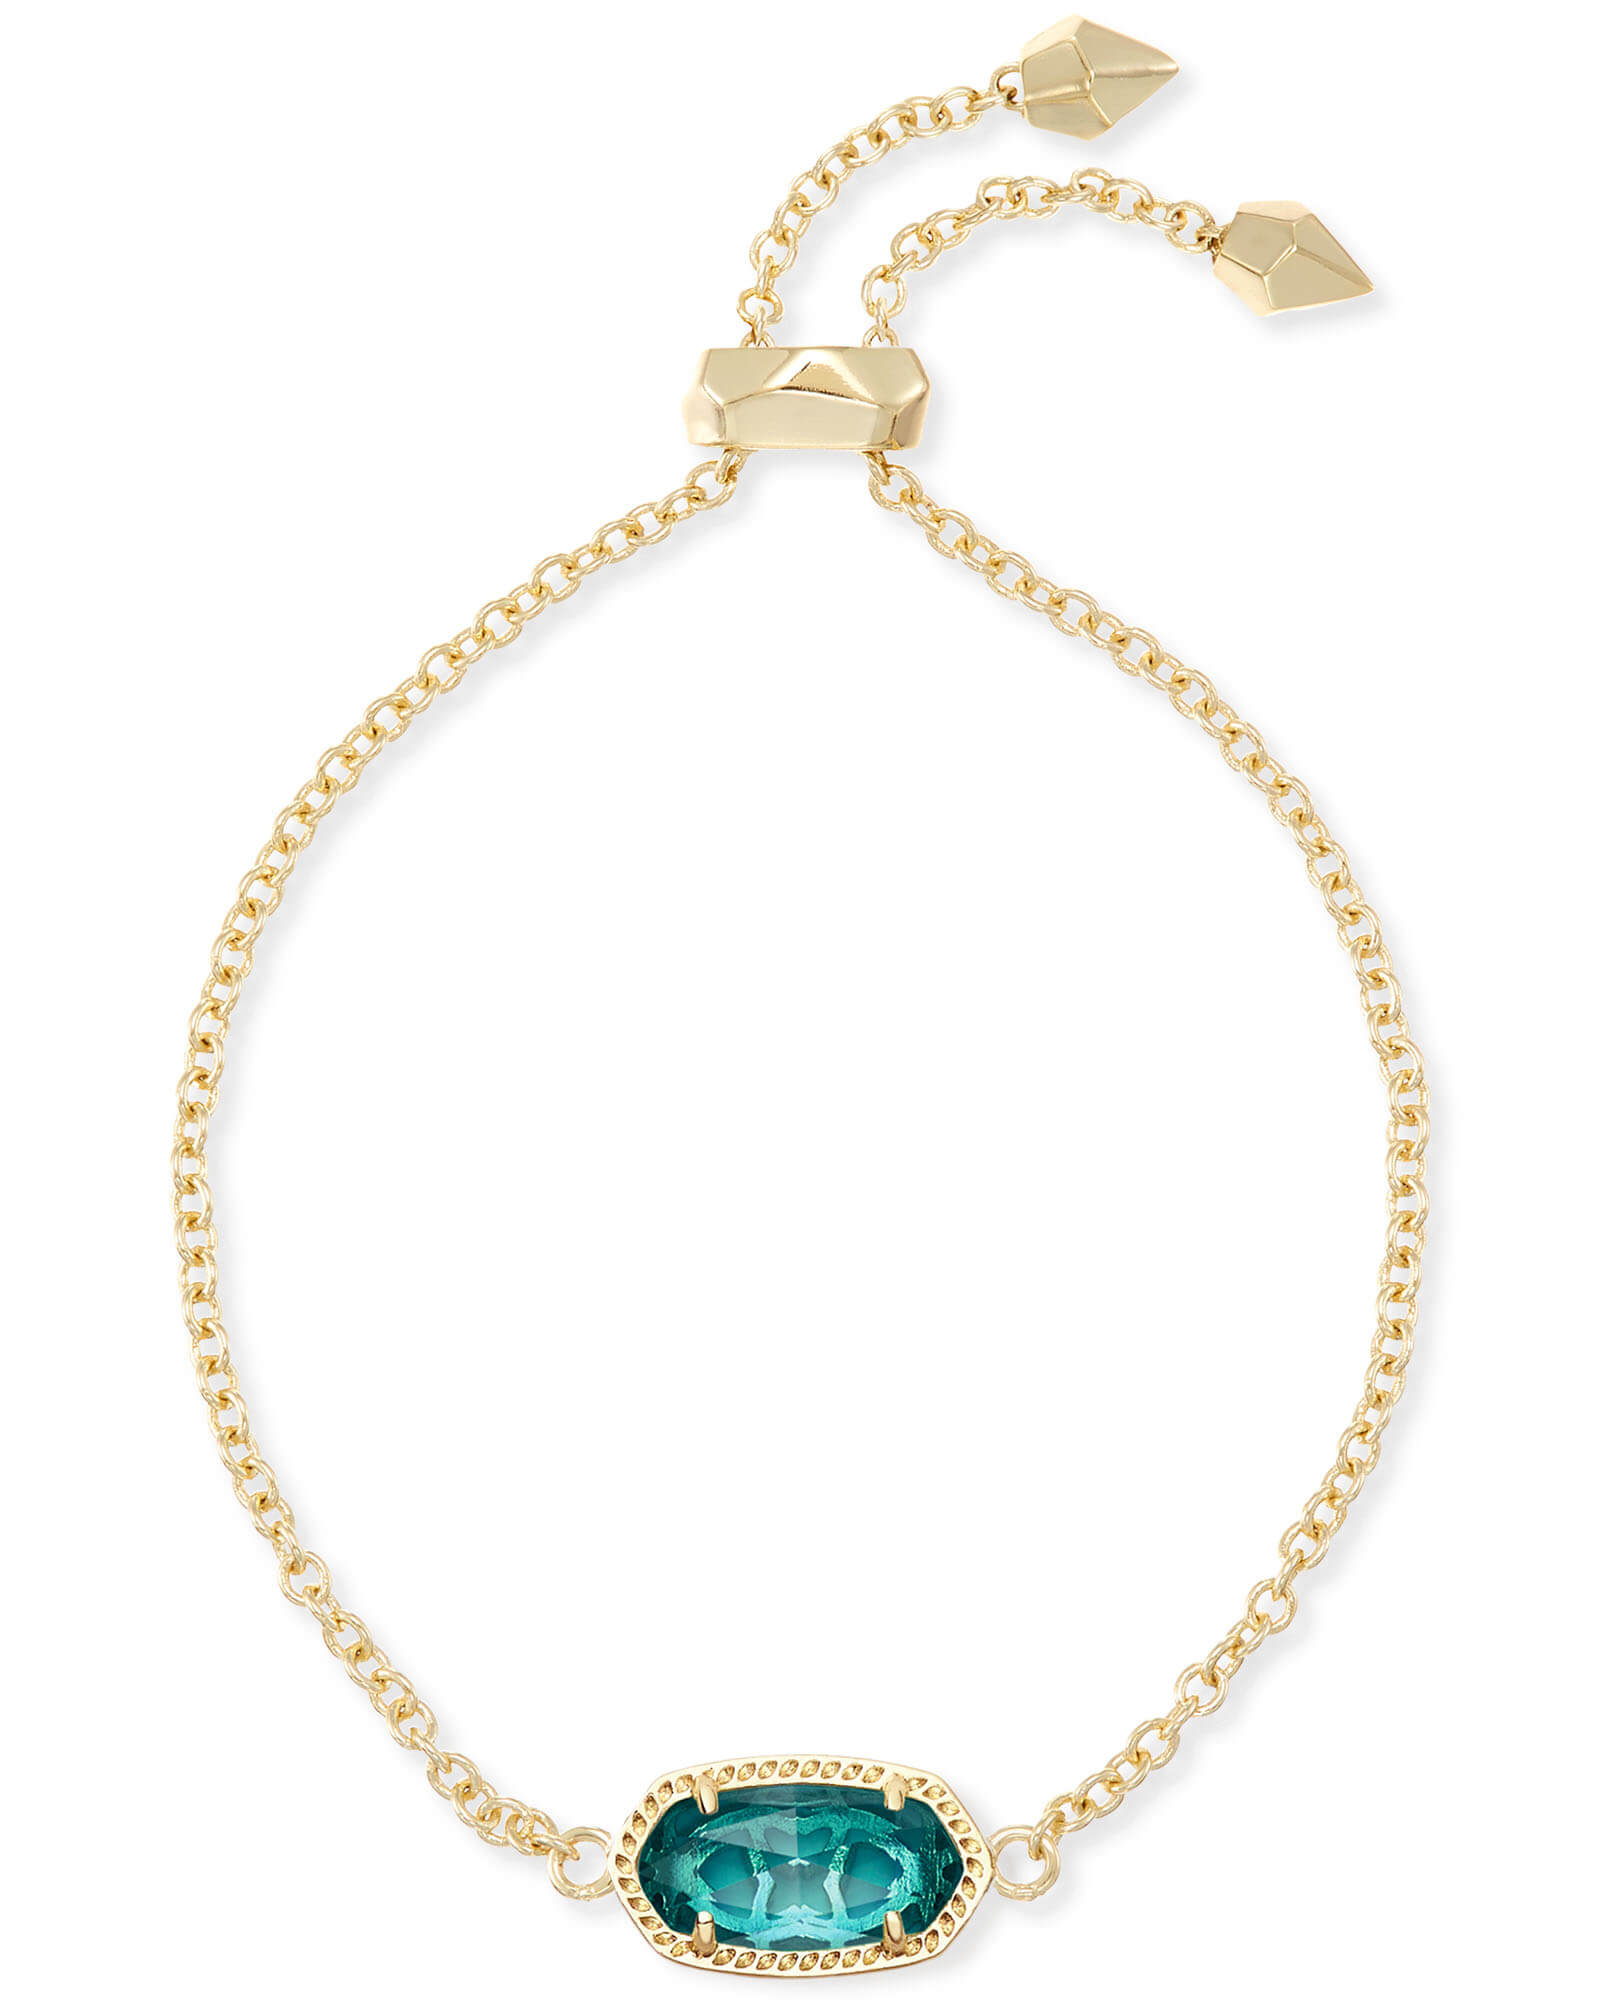 Elaina Gold Adjustable Bracelet In Blue | Kendra Scott With Regard To Current London Blue Crystal December Droplet Pendant Necklaces (View 11 of 25)